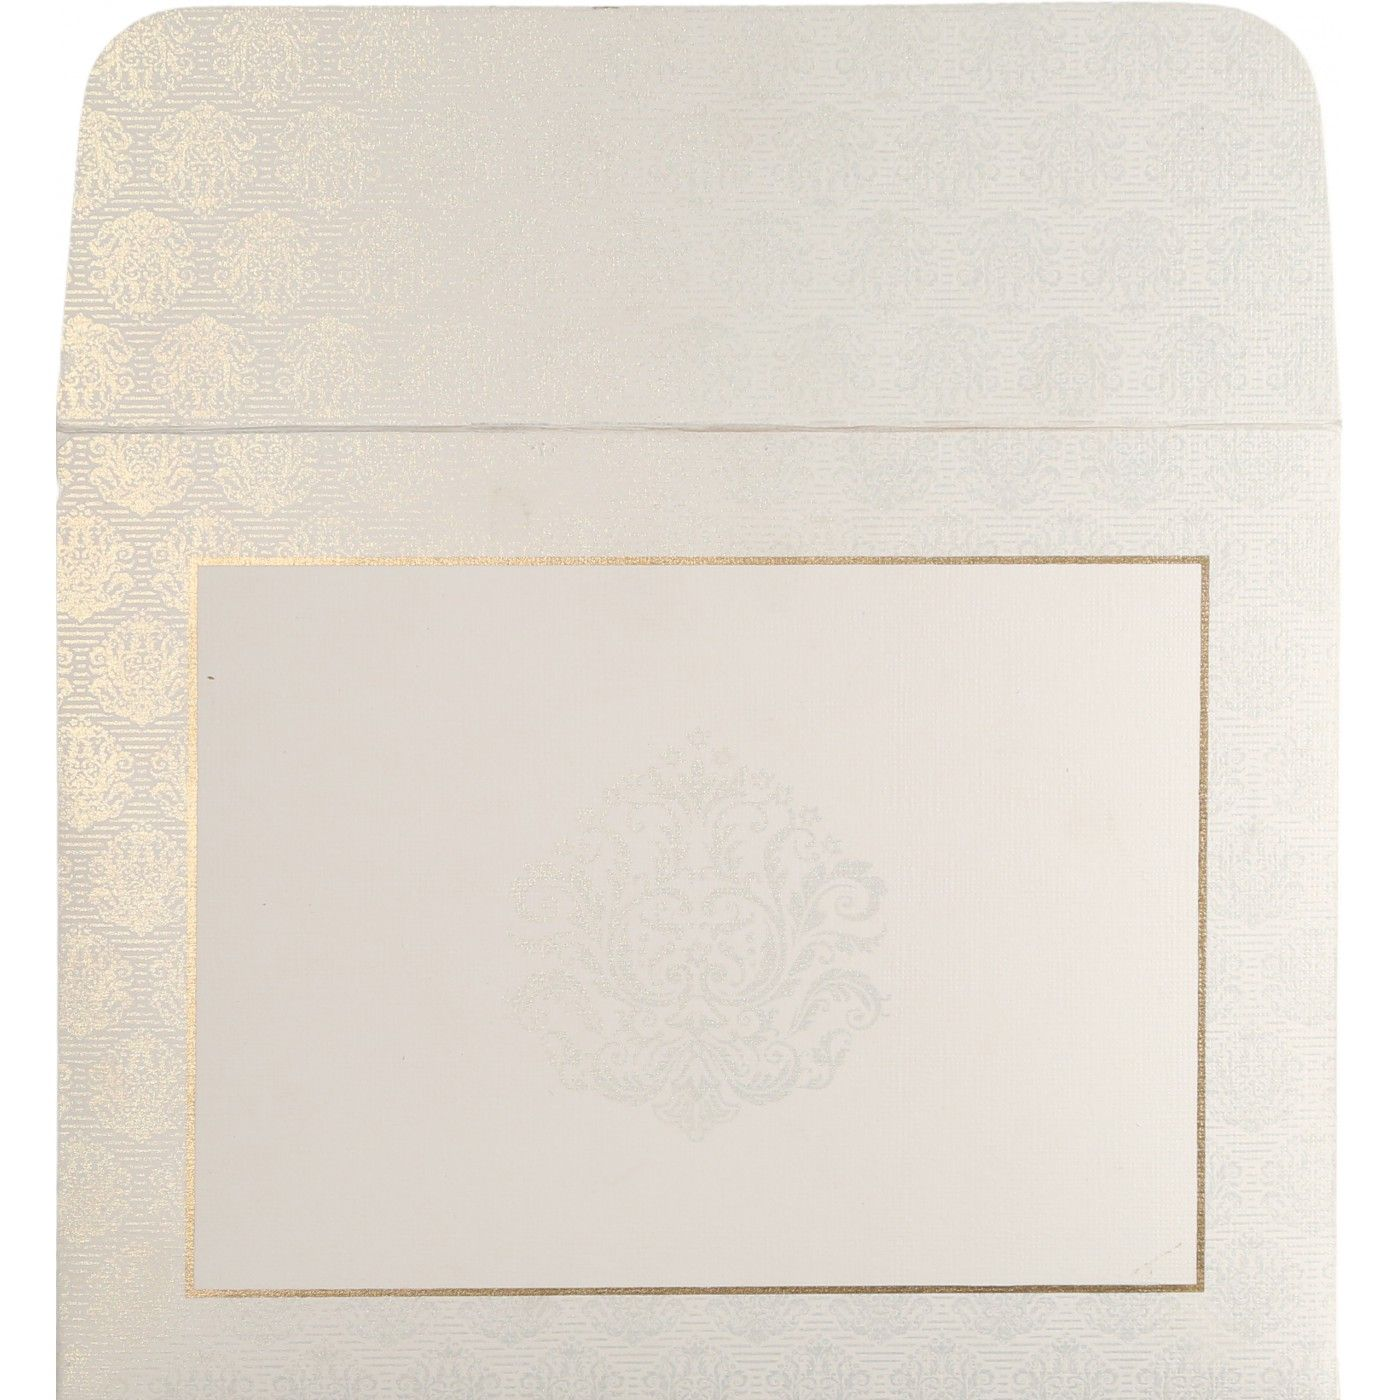 WHITE MATTE FOIL STAMPED WEDDING CARD : CIN-1502 - IndianWeddingCards